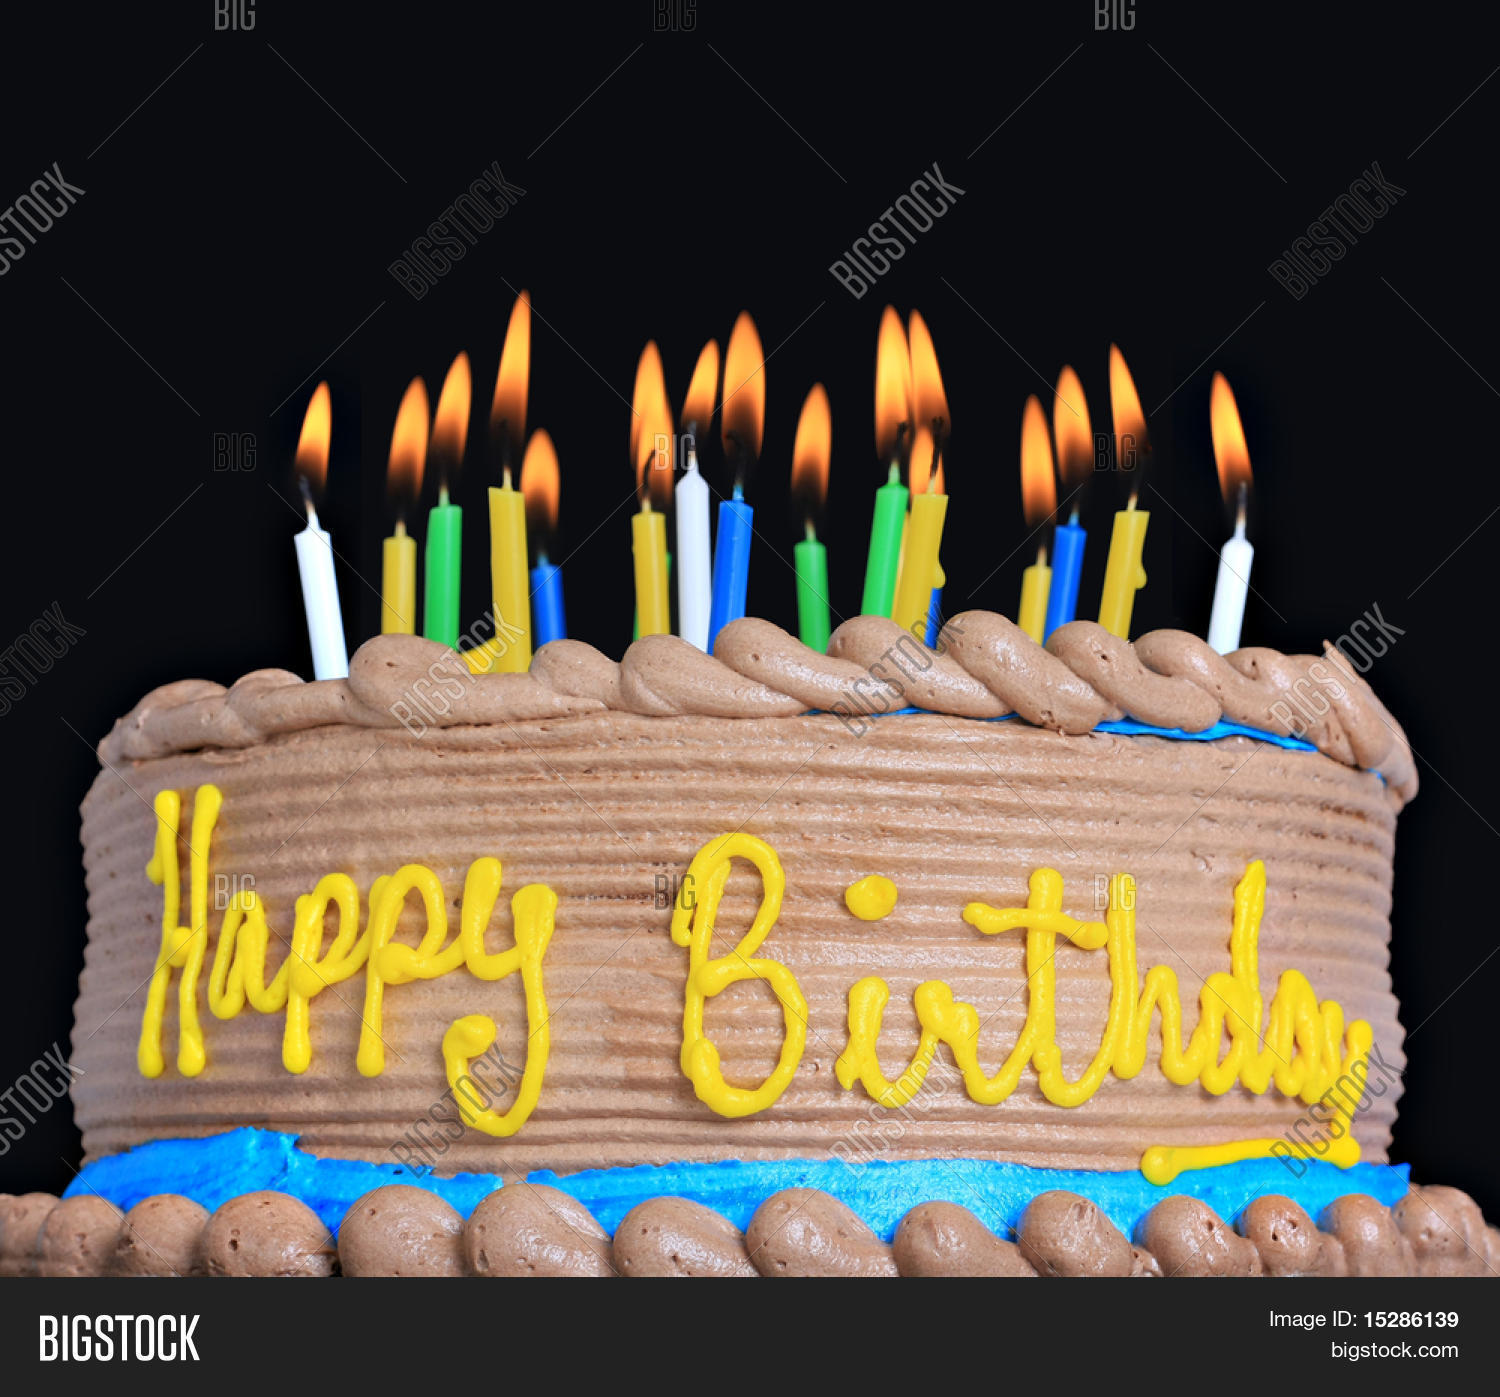 Happy Birthday Cake Lots Candles Image & Photo